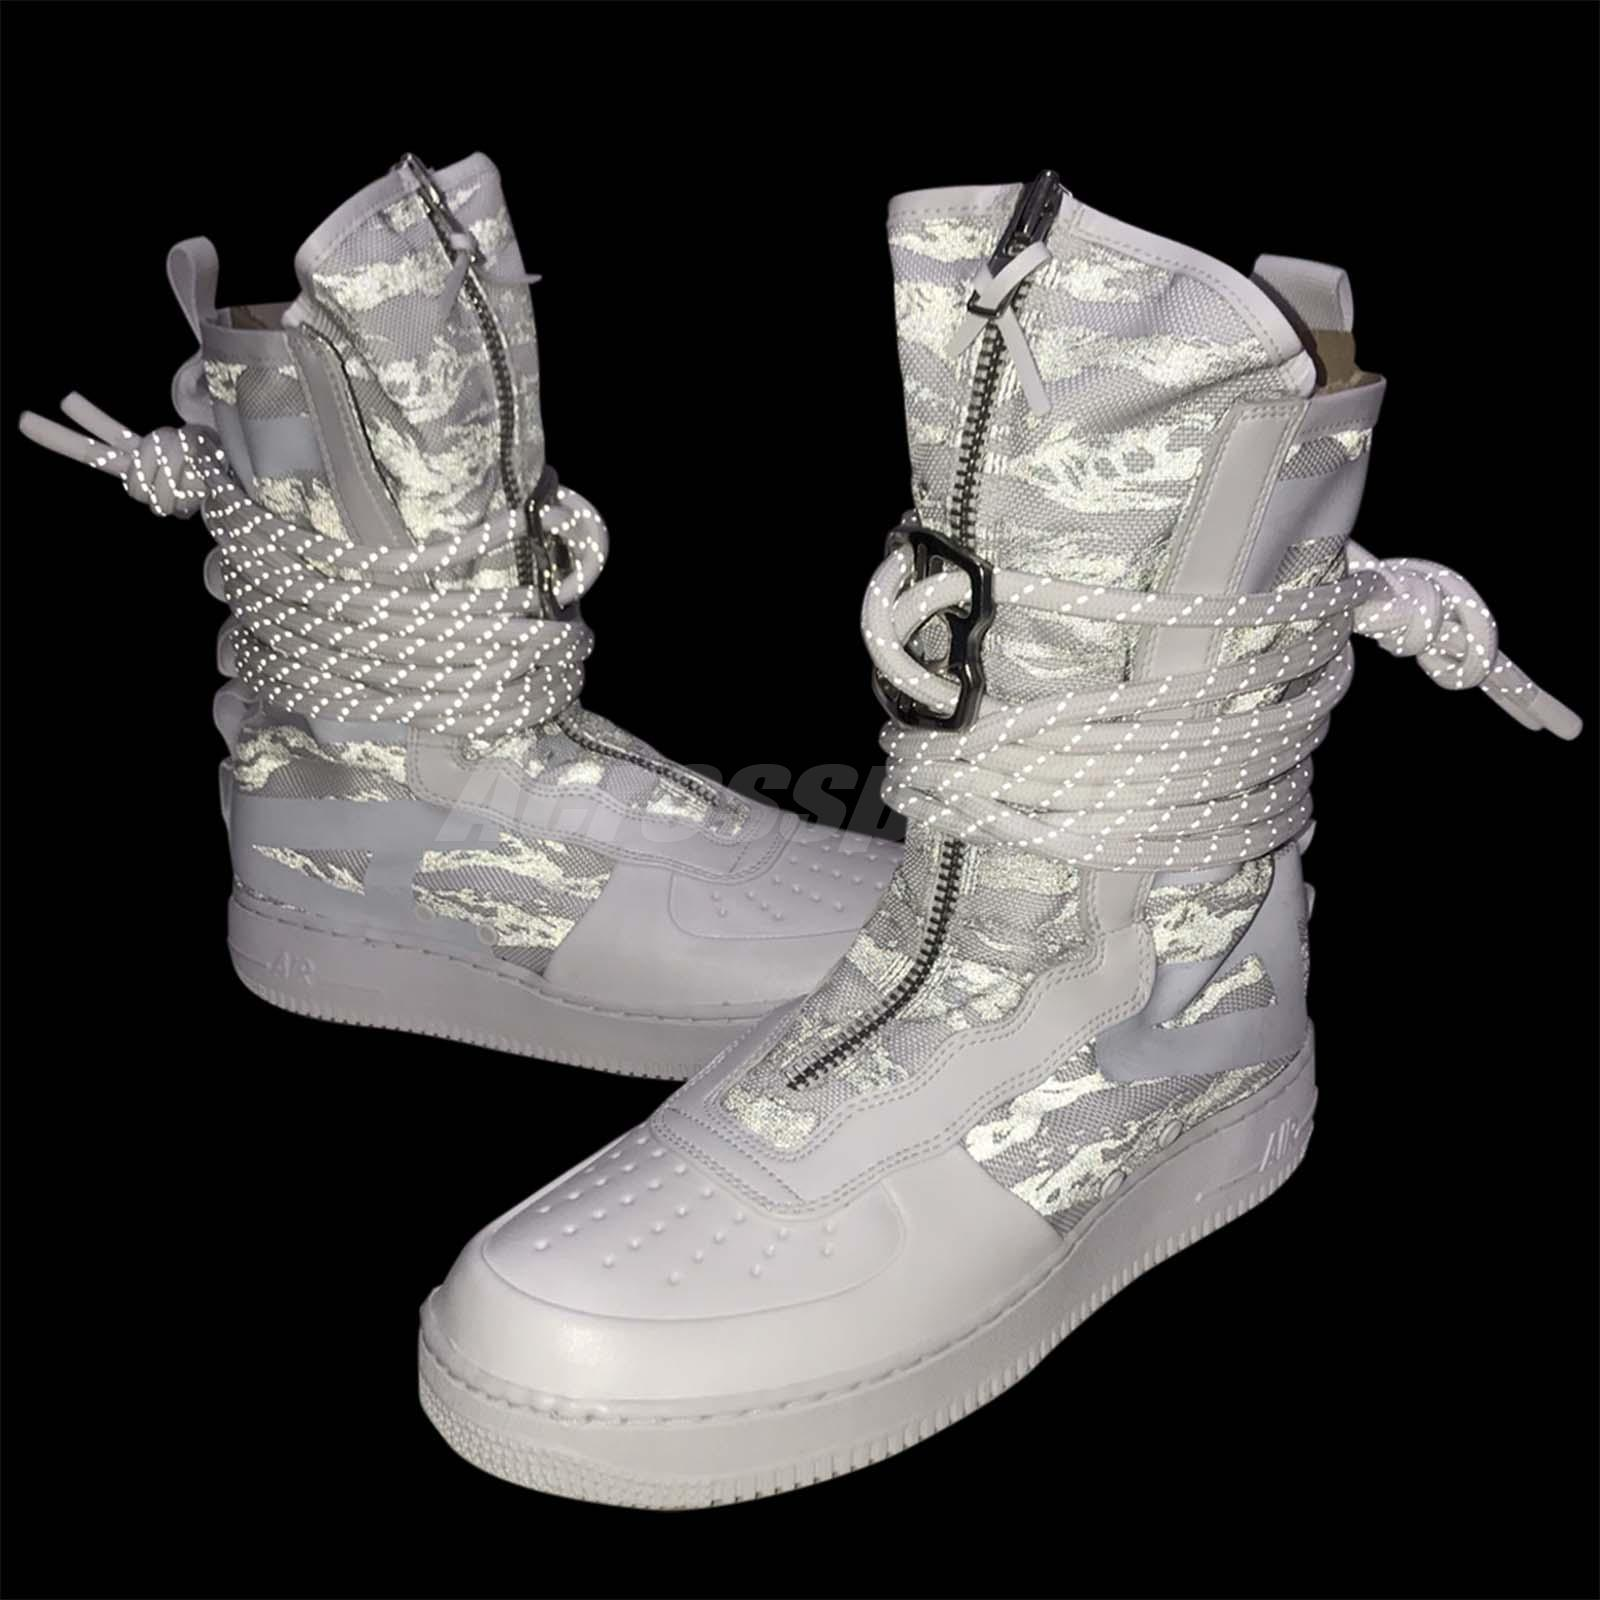 Nike SF AF1 HI PRM IBEX White Camo High Special Field Air Force 1 ... c6fedeb9b53df